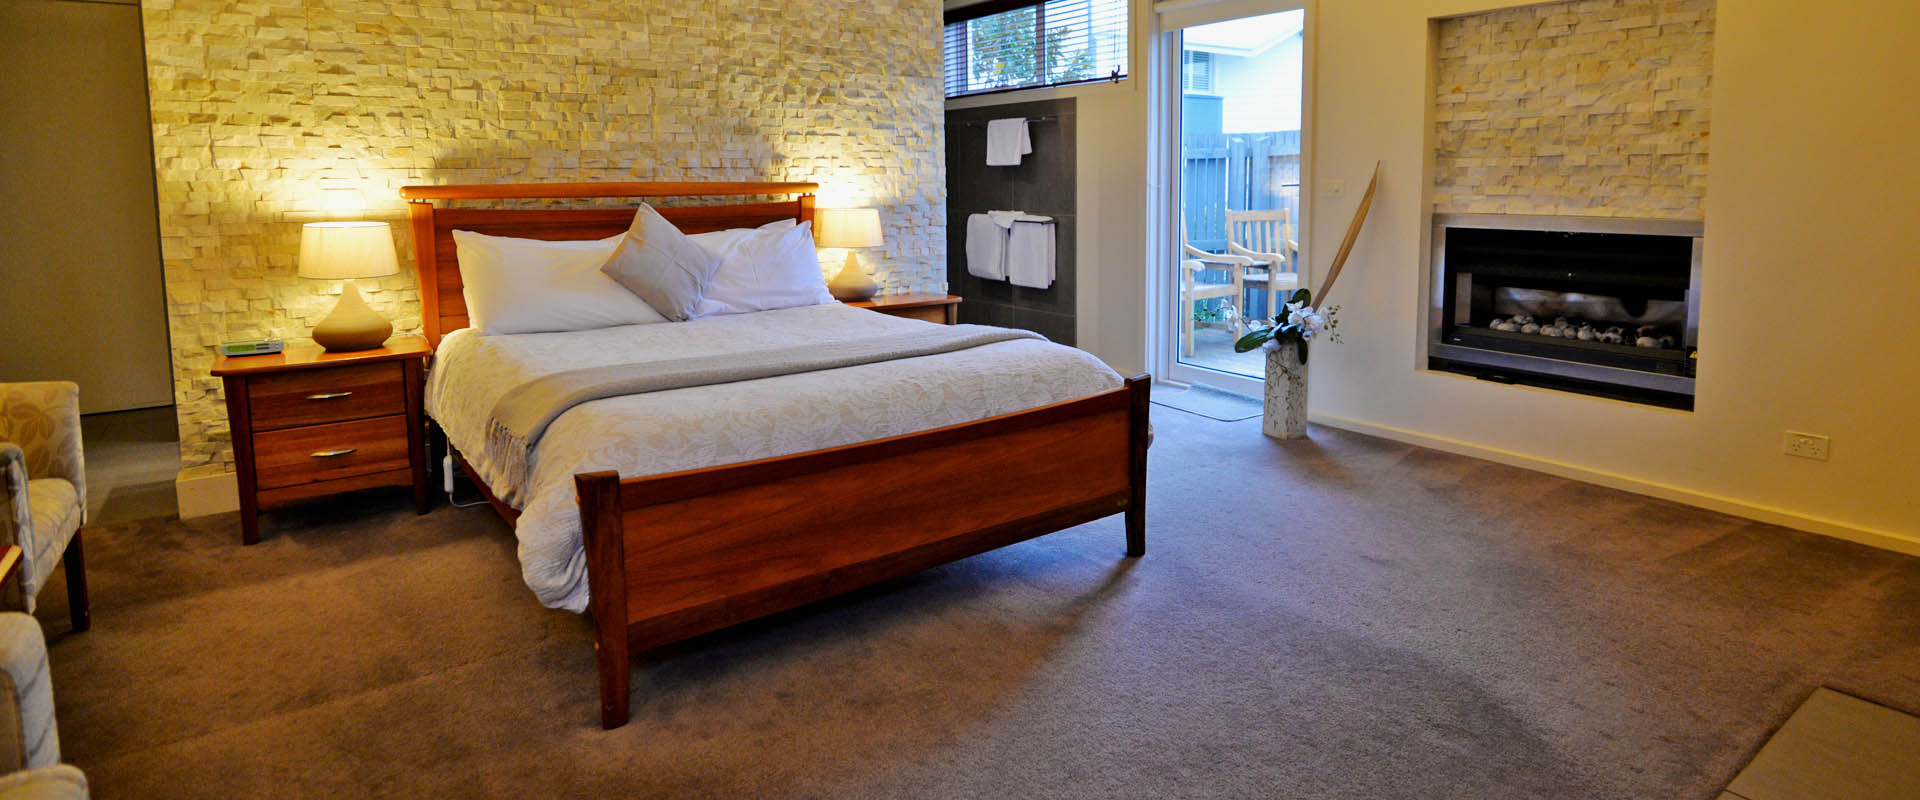 Centrally Located & Ideal place to stay when visiting Great Ocean Road.